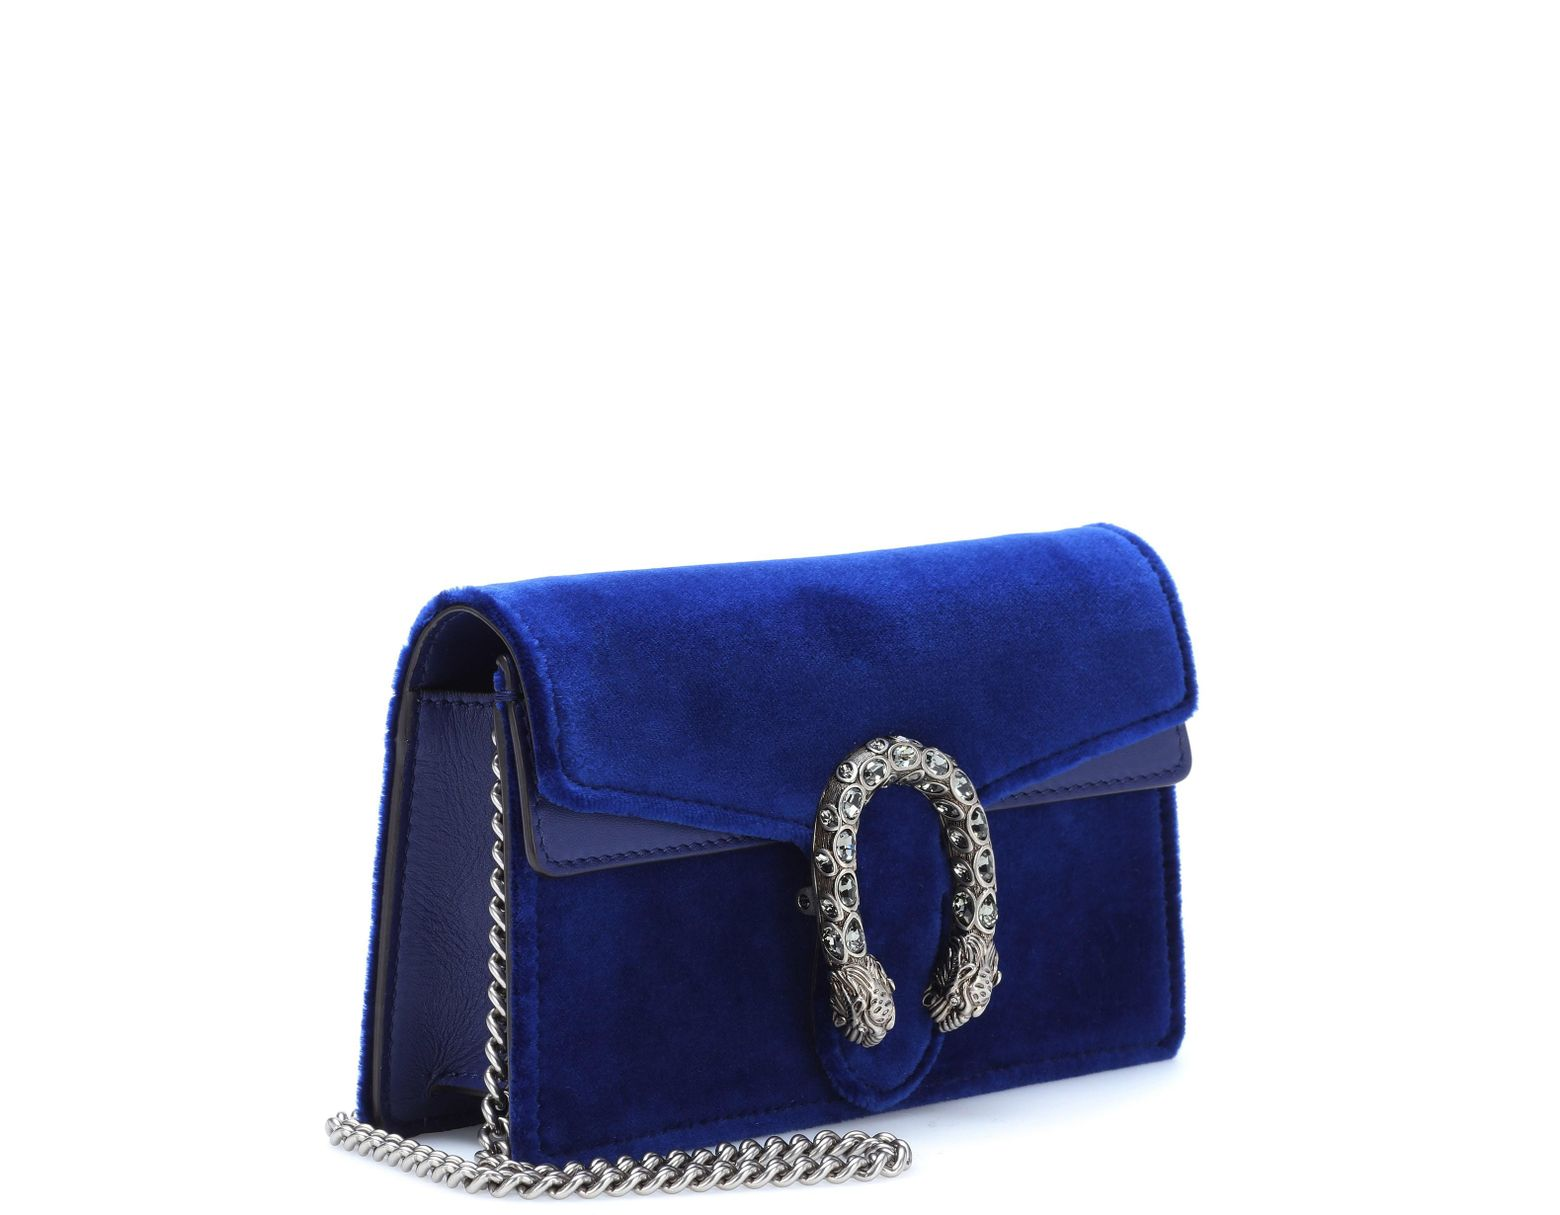 37178737218cdc Gucci Dionysus Velvet And Leather Clutch in Blue - Lyst